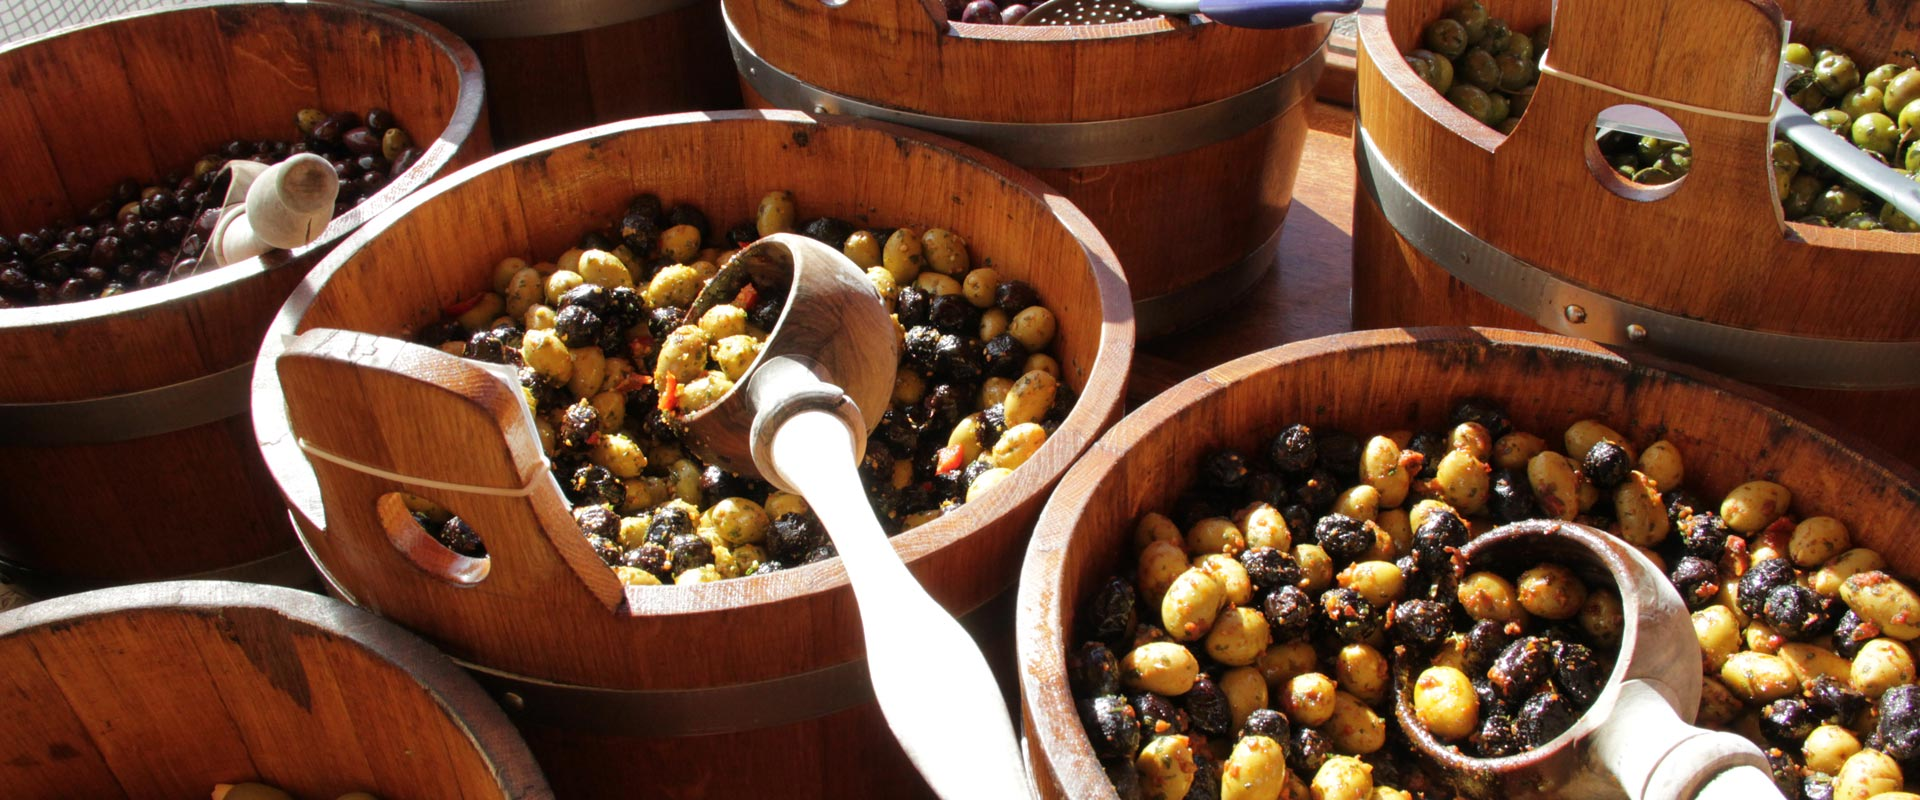 recettes d'olives aromatisees